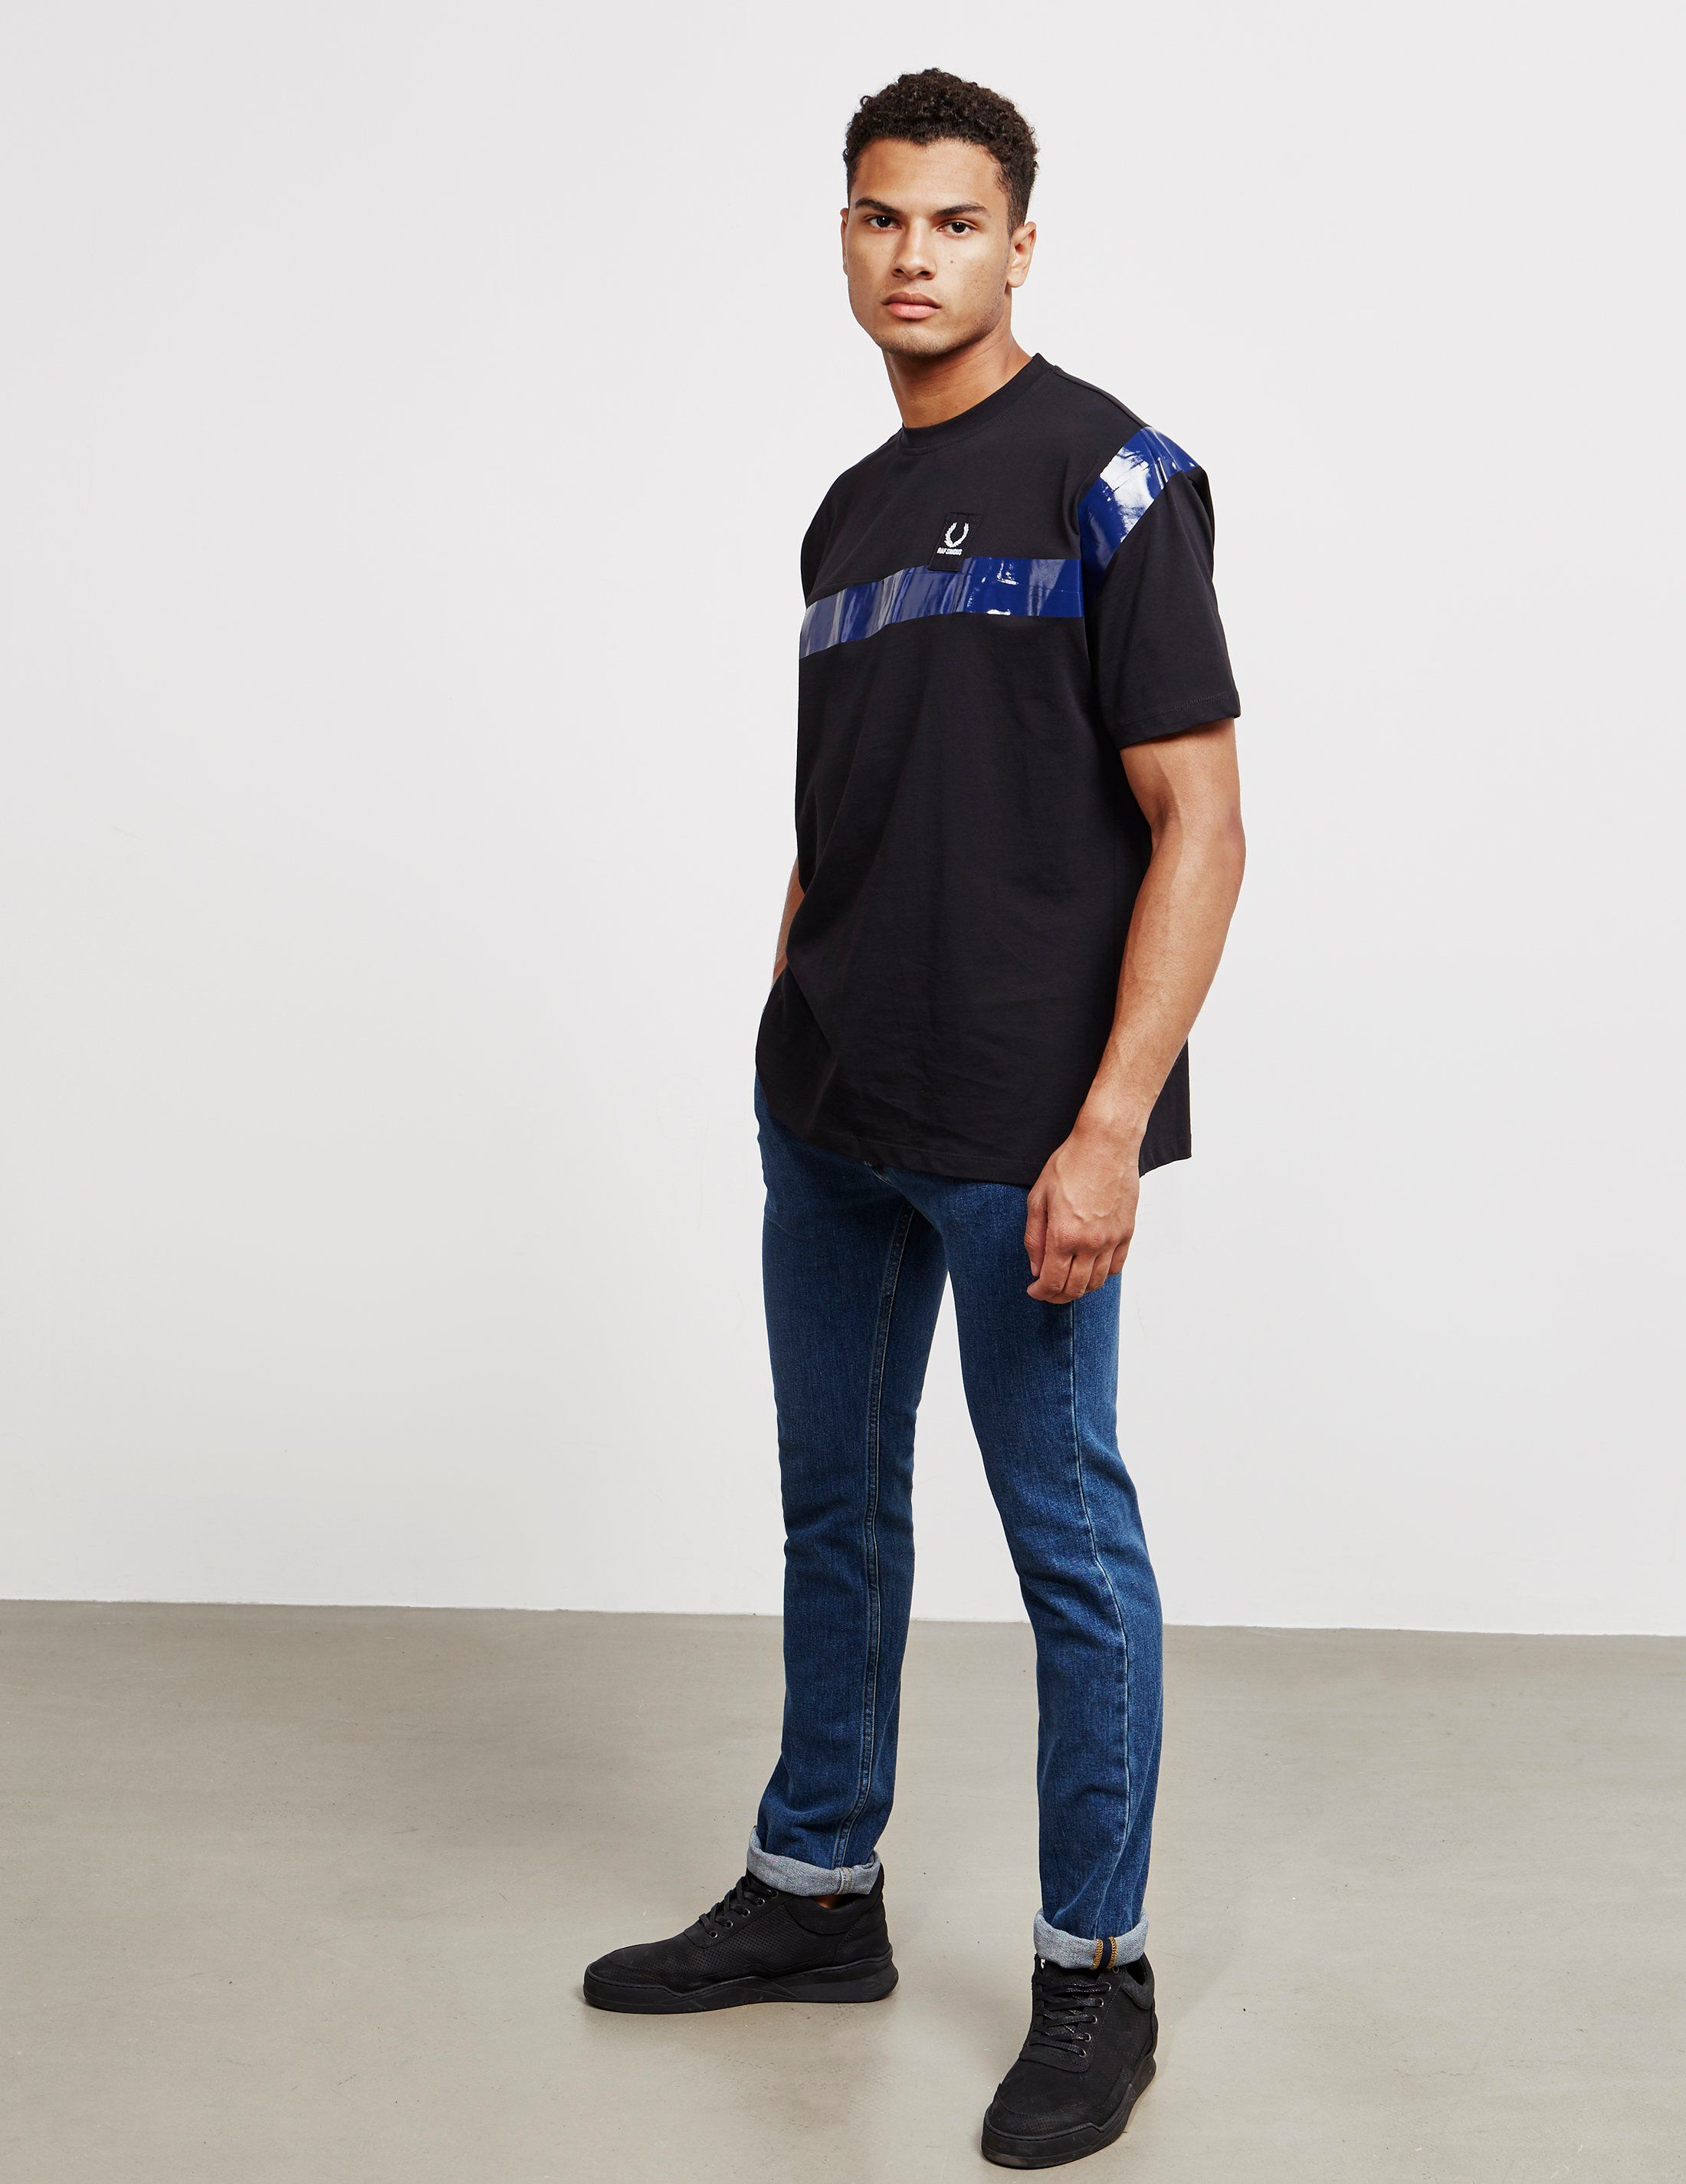 Fred Perry x Raf Simons Short Sleeve Tape T-Shirt